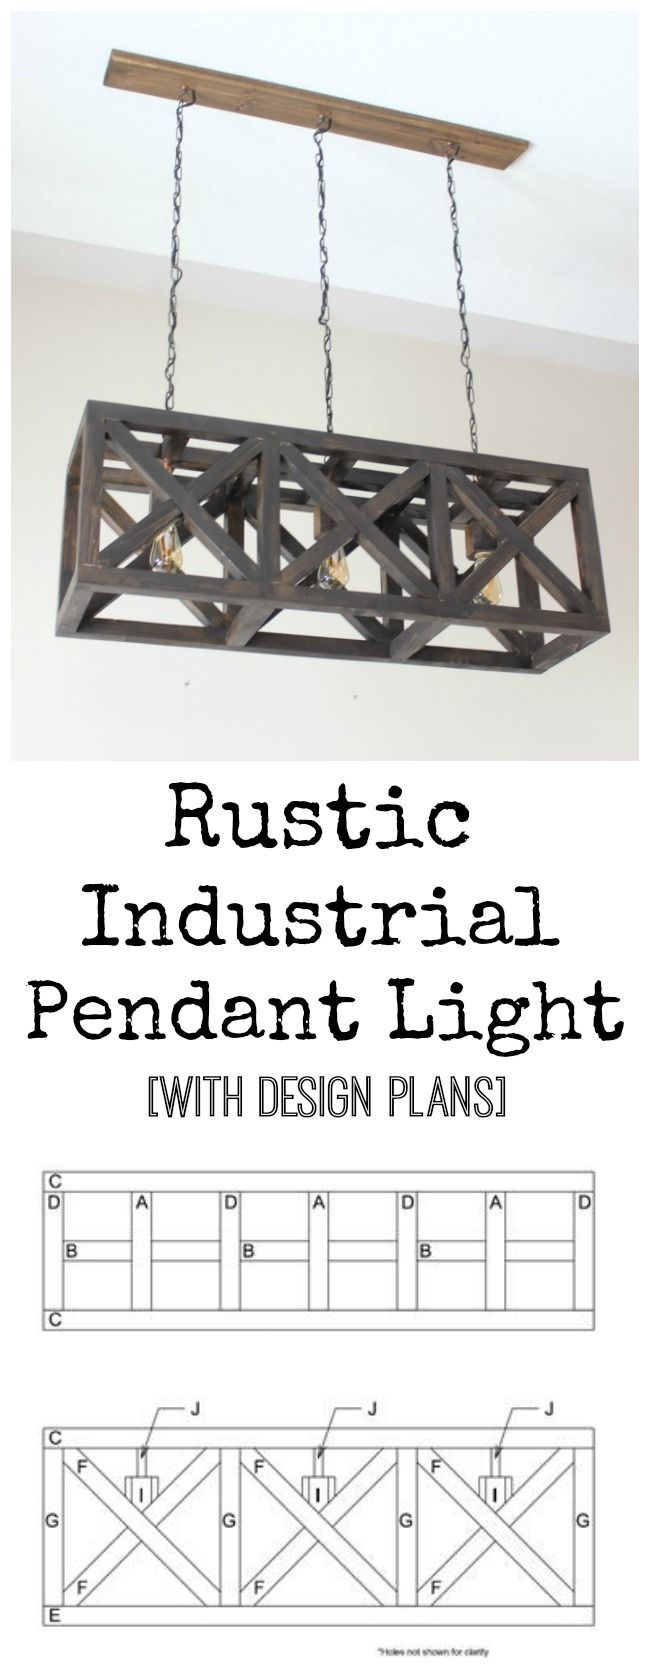 Diy Furniture Rustic Industrial Pendant Light Free Design Plans For This Beautiful Diy Light Diyall Net Home Of Diy Craft Ideas Inspiration Diy Projects Craft Ideas